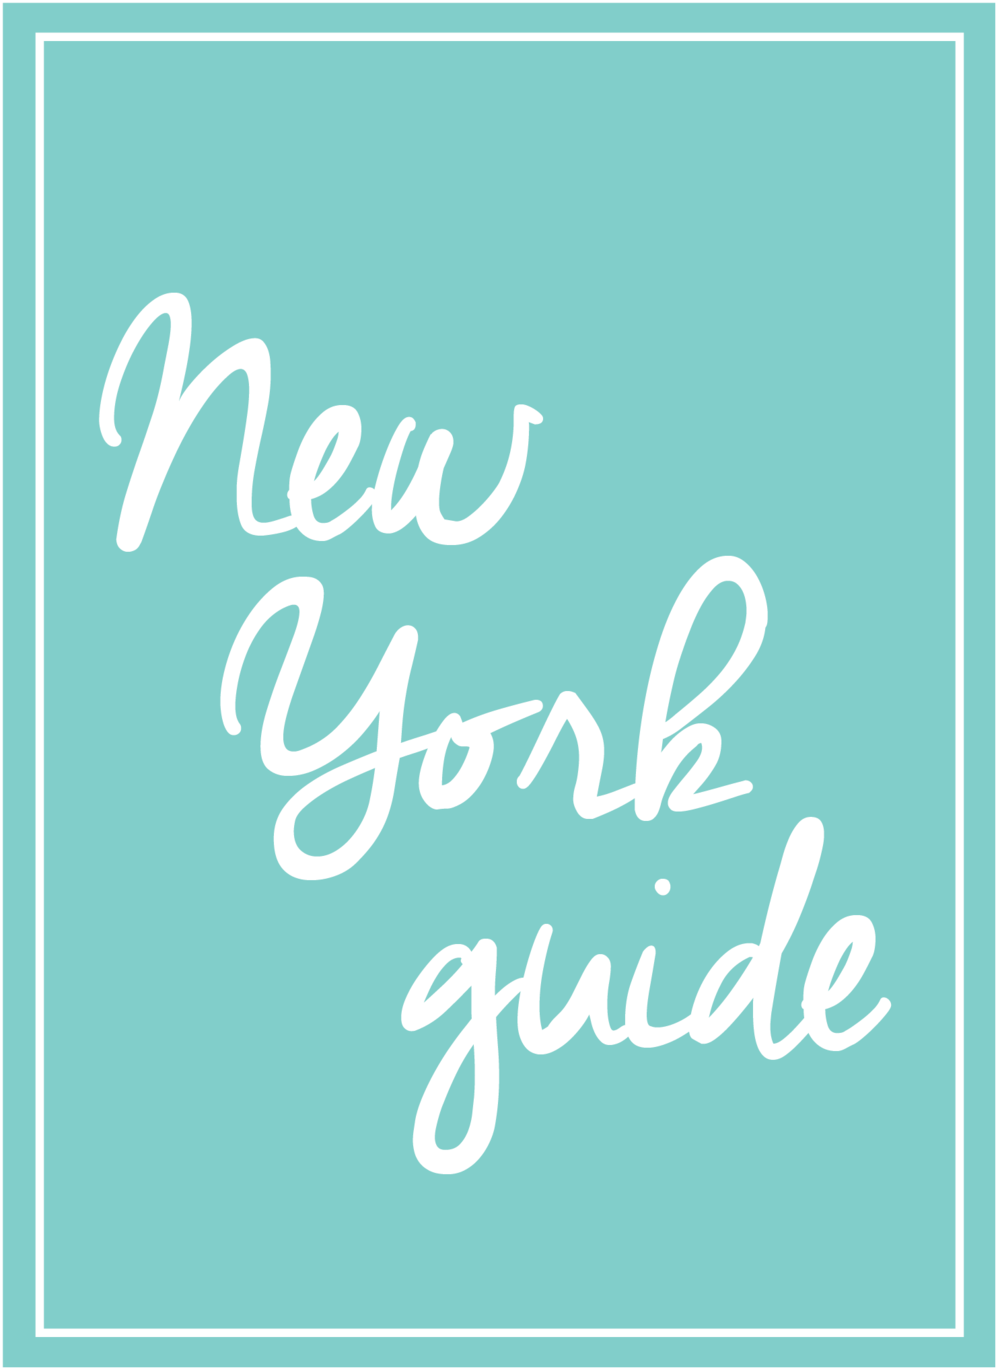 Anna Osgoodby Life + Design : NYC Guide